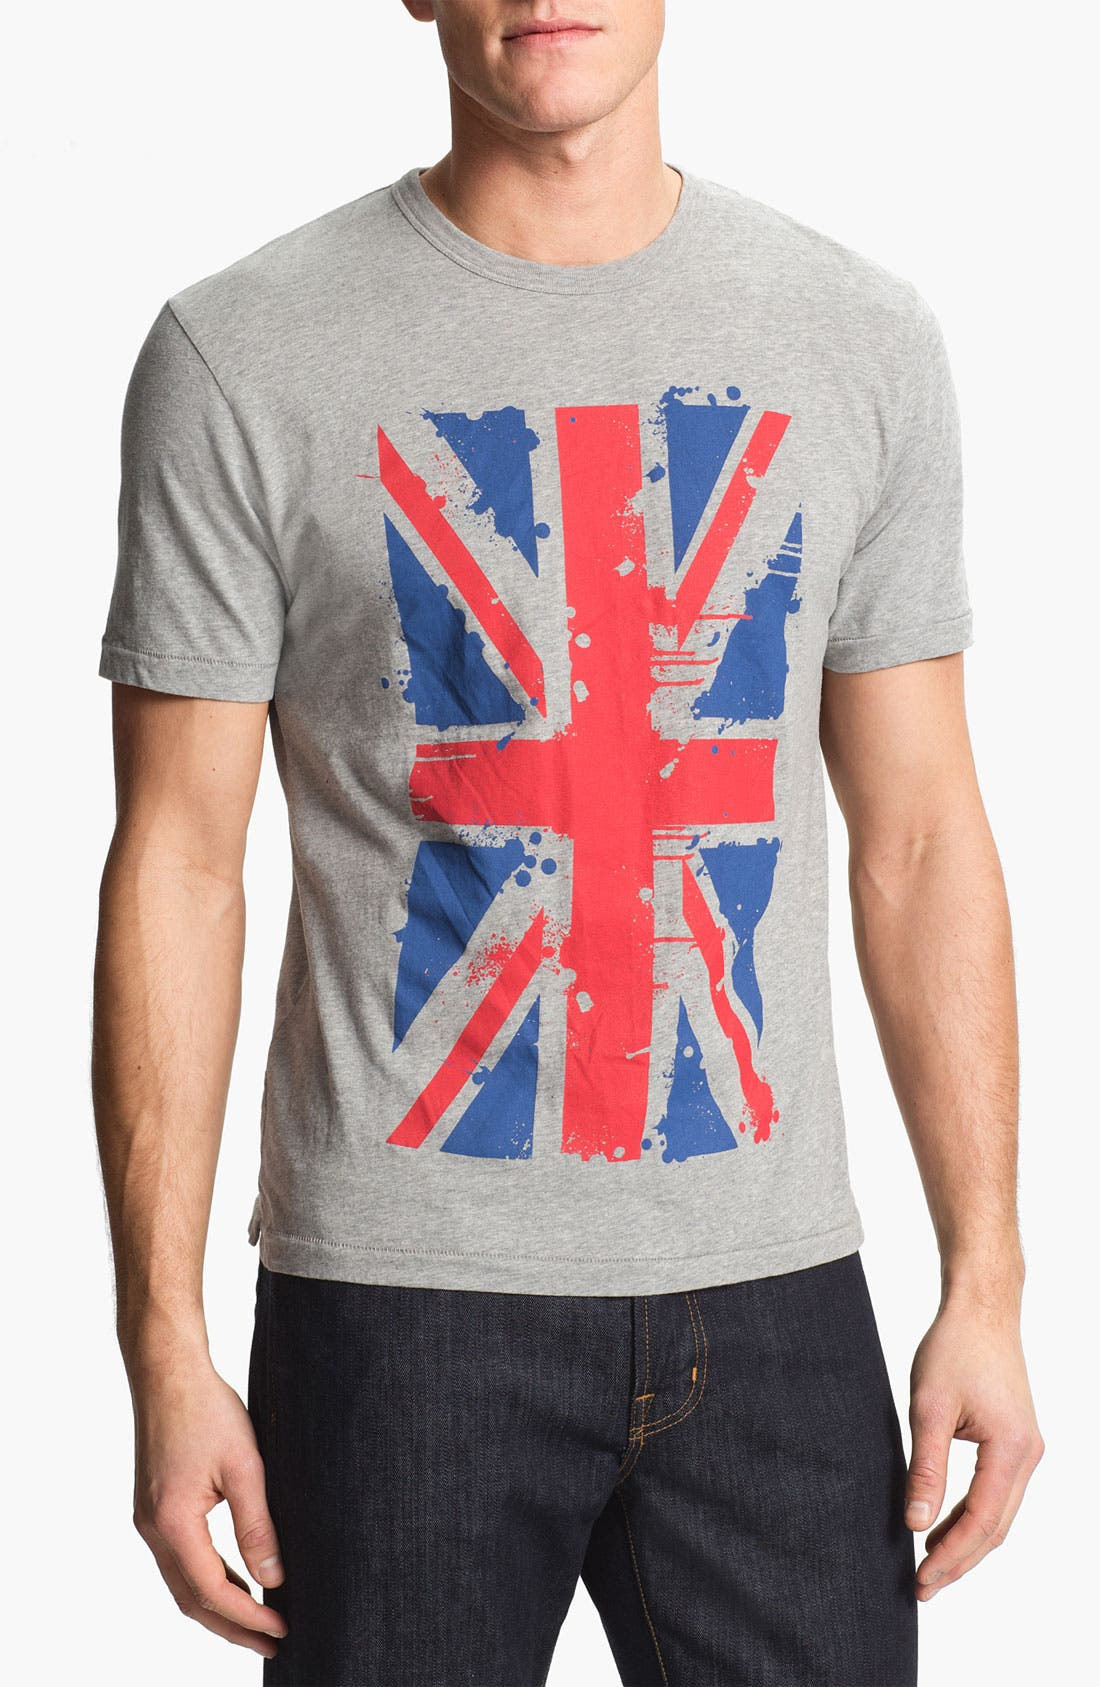 Alternate Image 1 Selected - French Connection 'Union Splat' T-Shirt (Online Only)